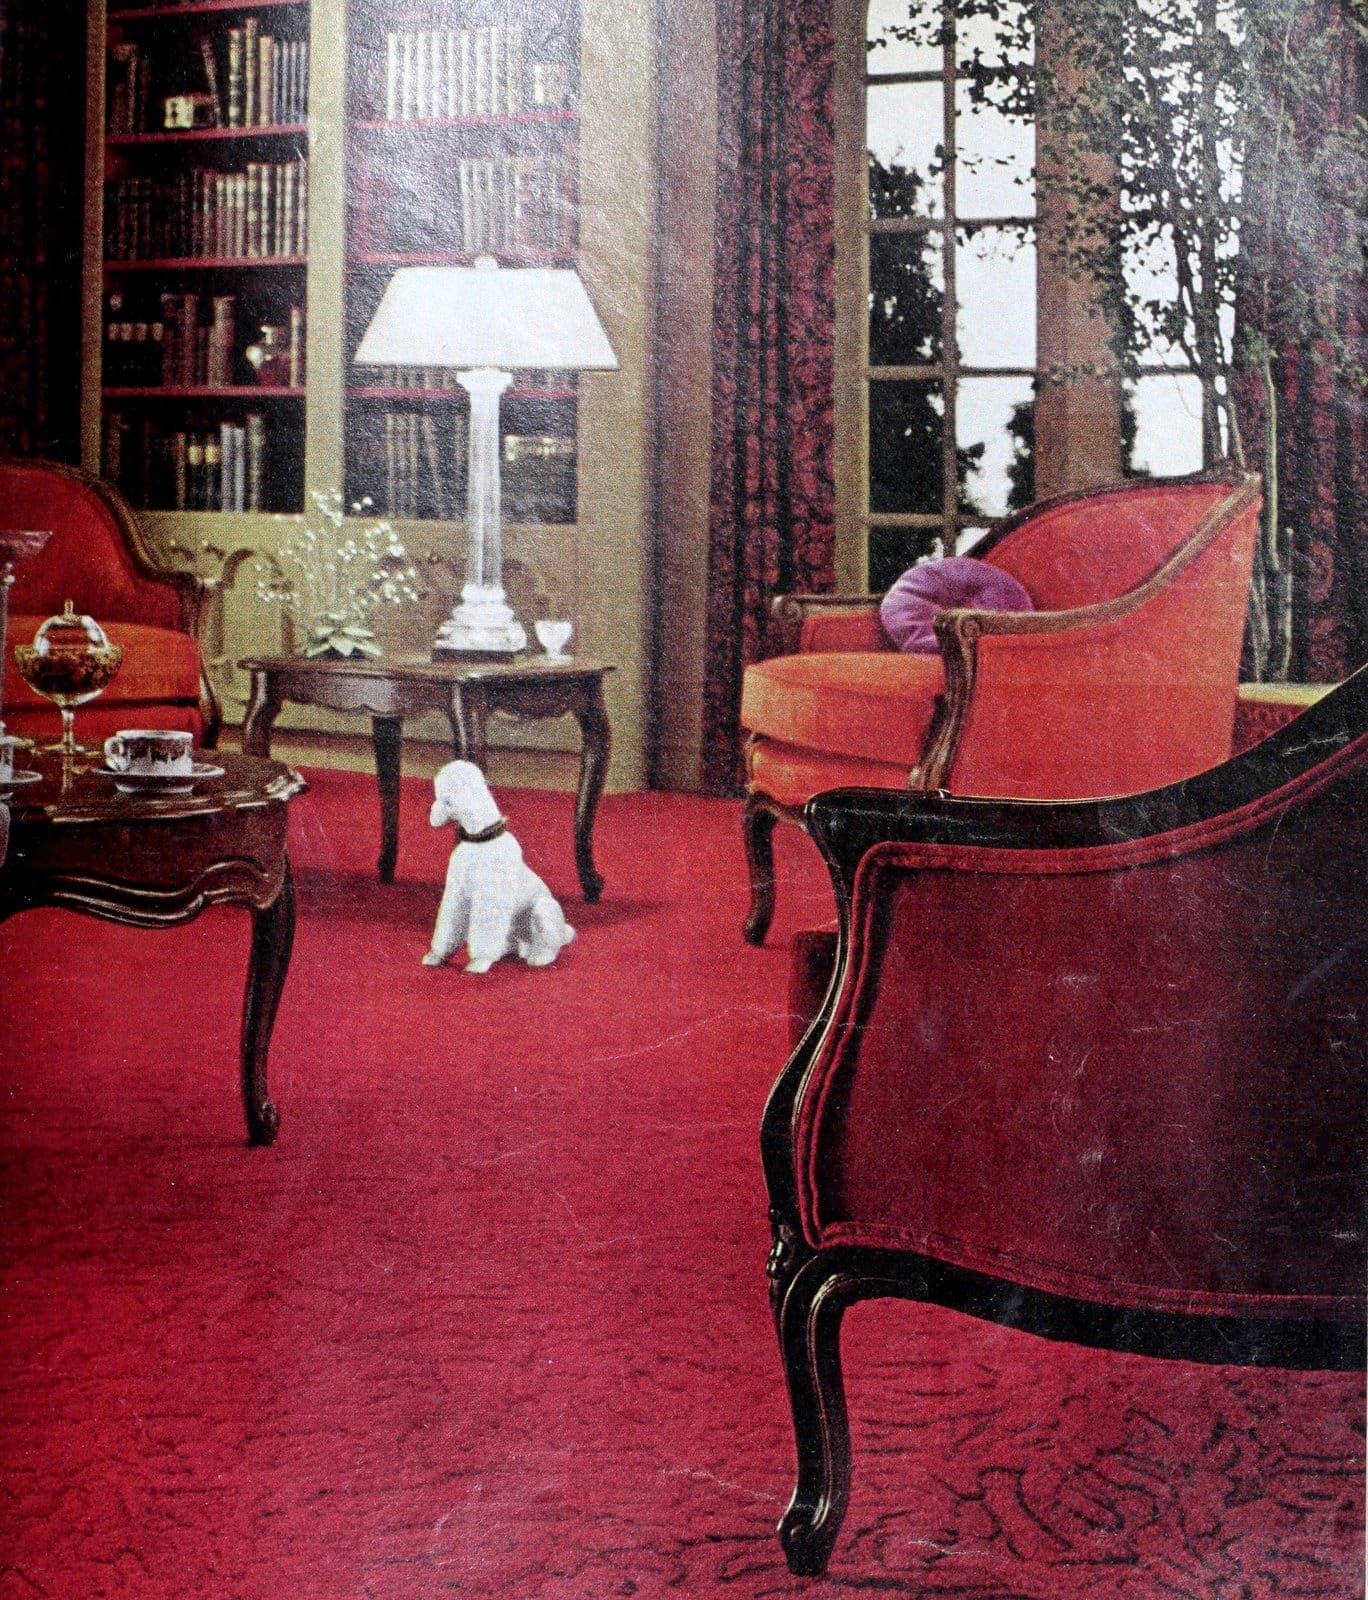 Formal vintage 60s living room with deep red carpet and furniture (1969)